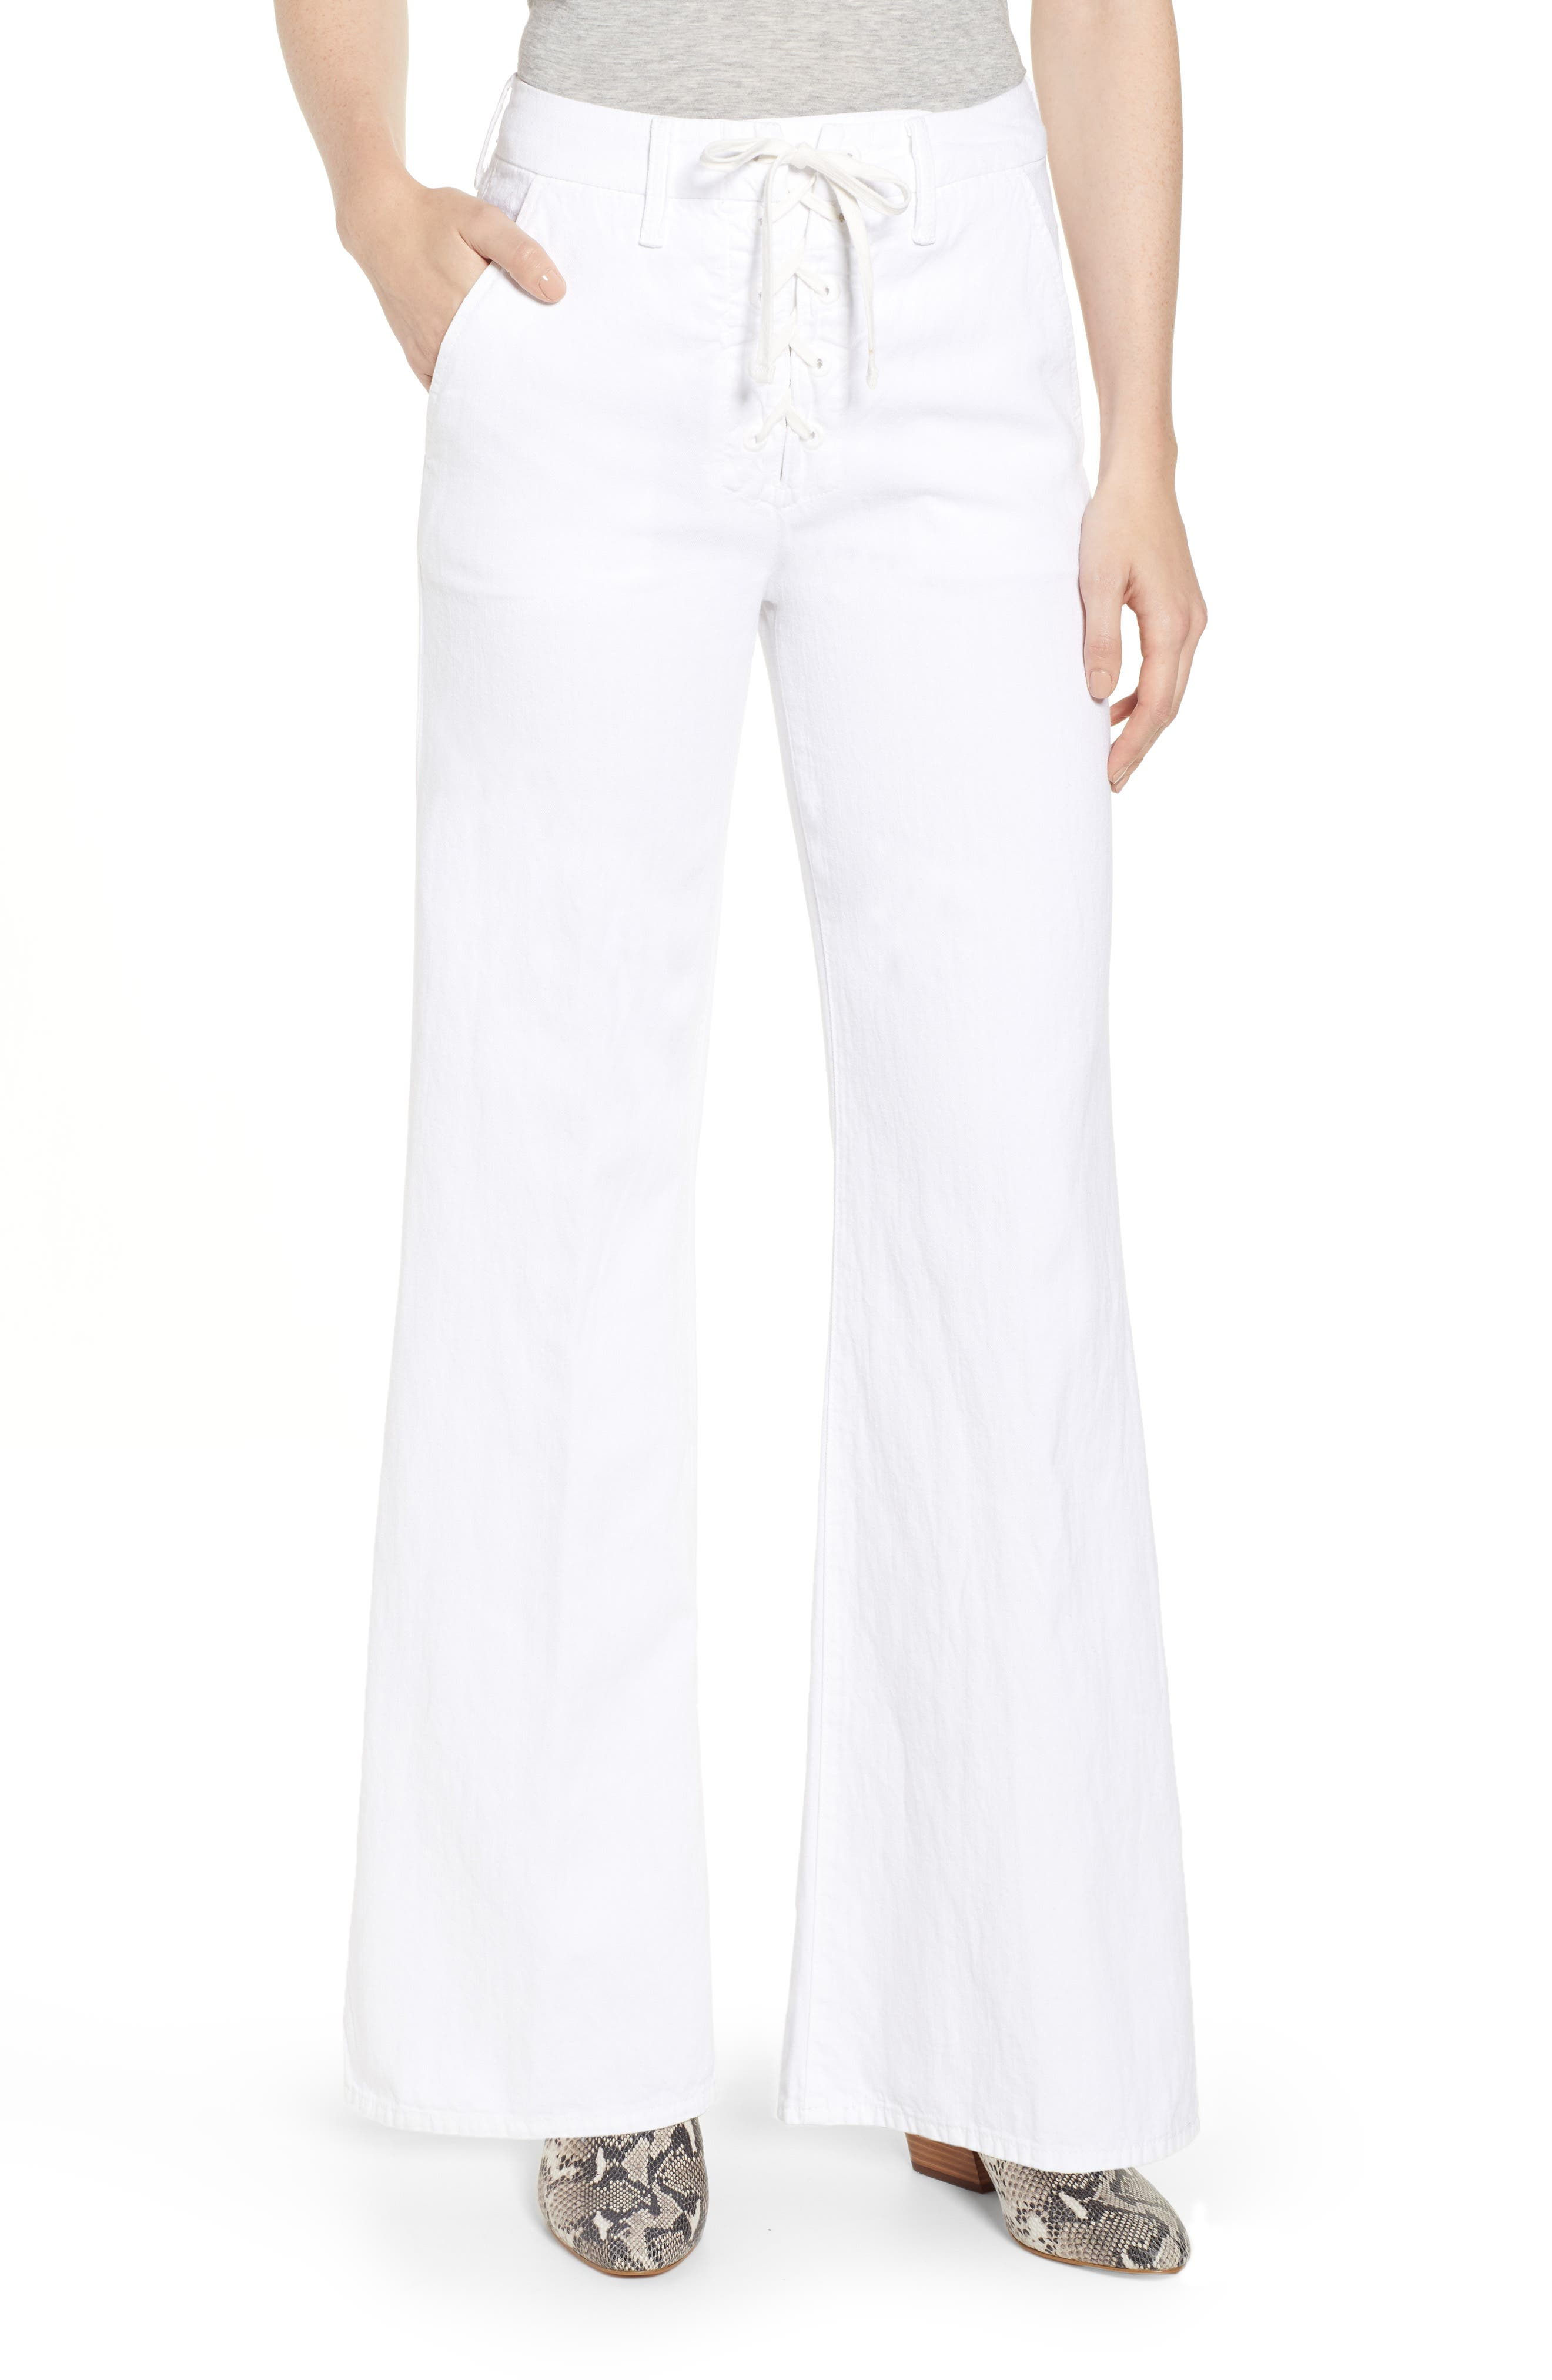 MOTHER The Tie-Up Roller Wide Leg Twill Pants, Main, color, RETURN TO THE ISLAND